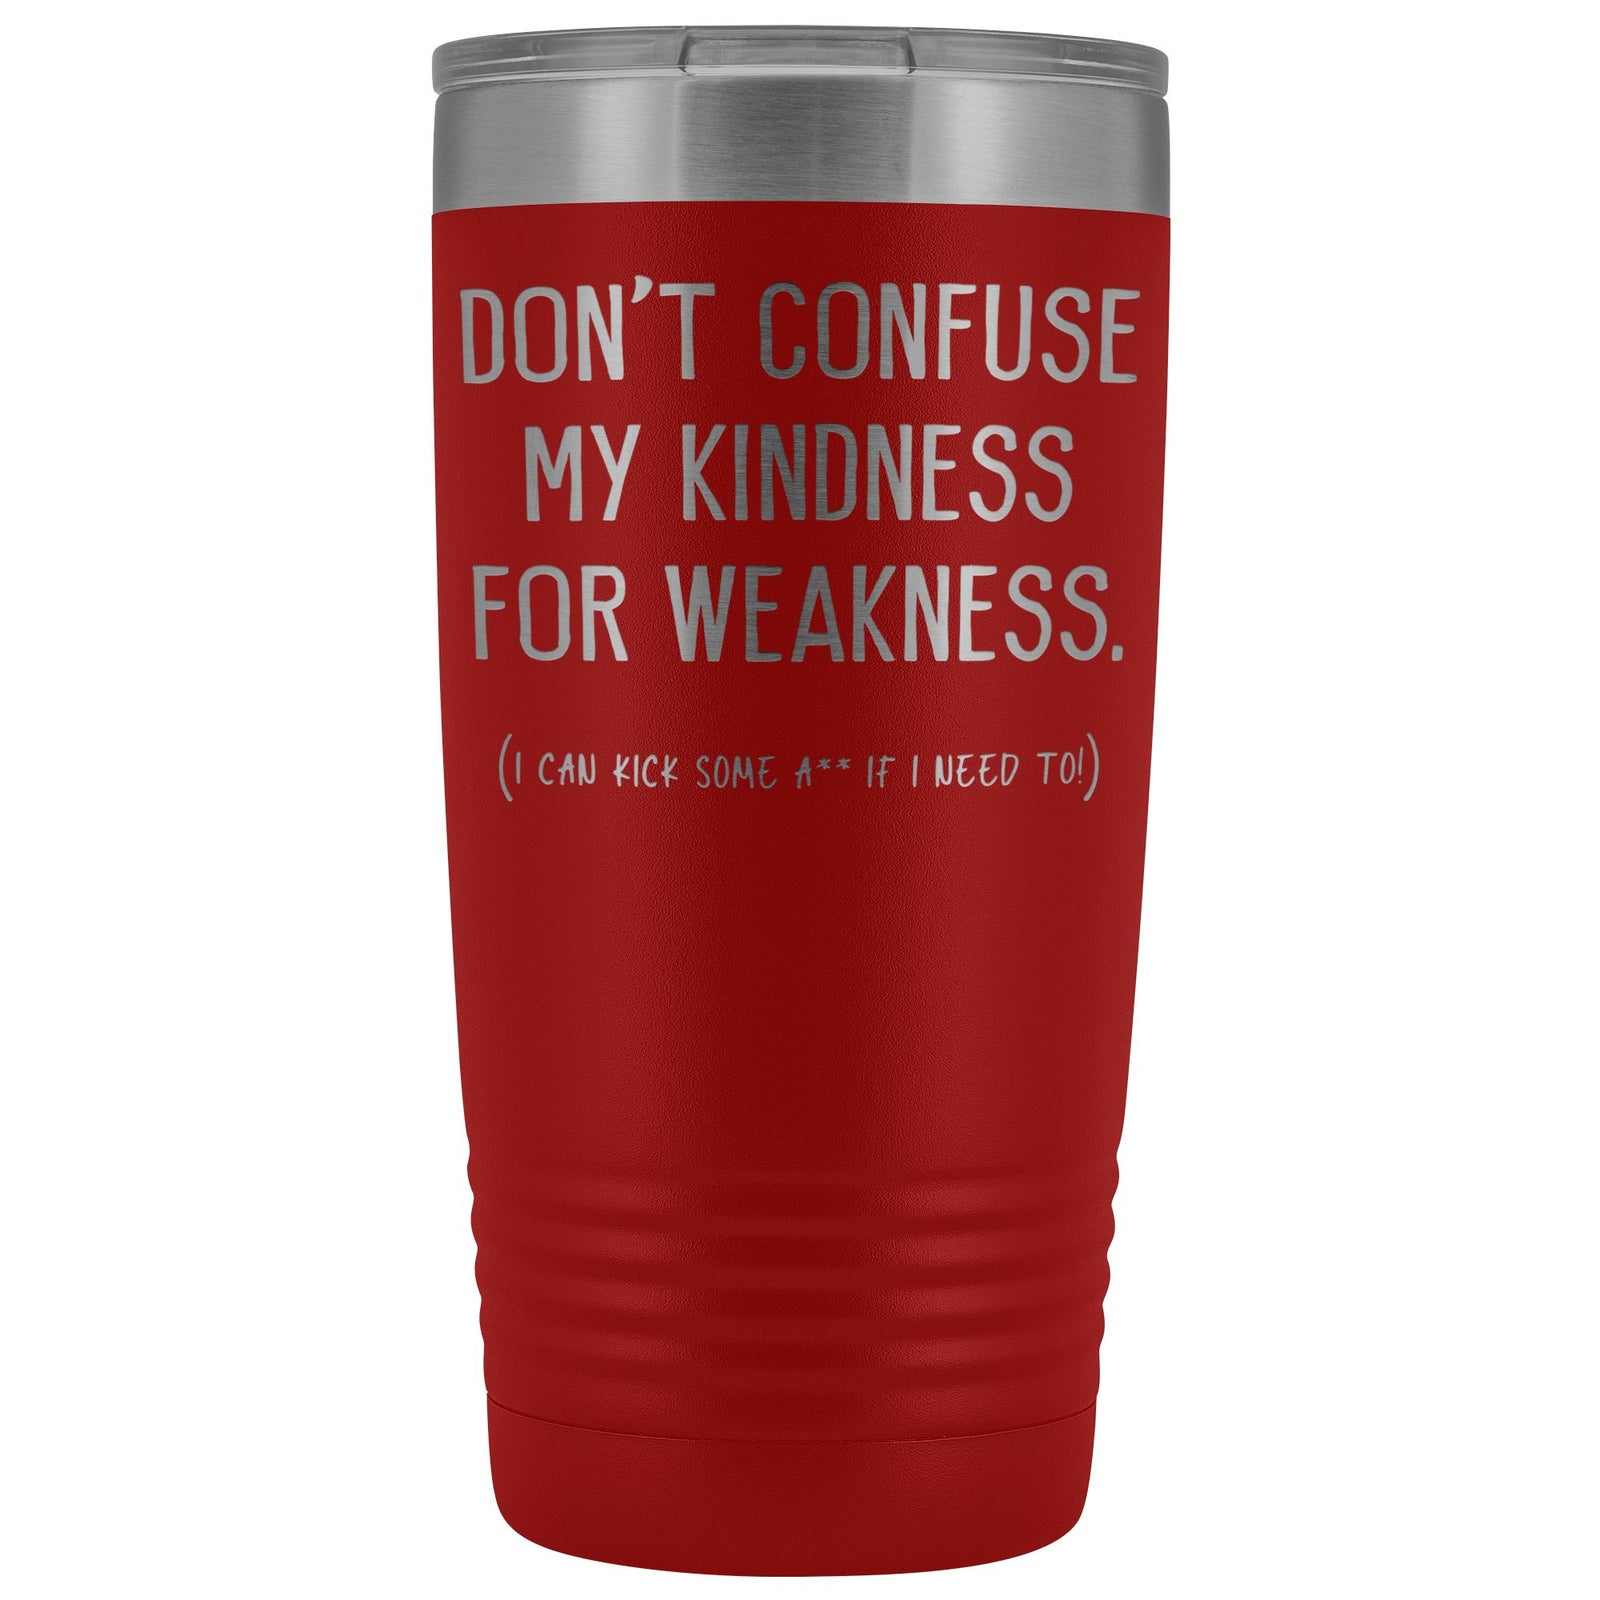 Don't Confuse My Kindness For Weakness  20oz. Insulated Tumbler